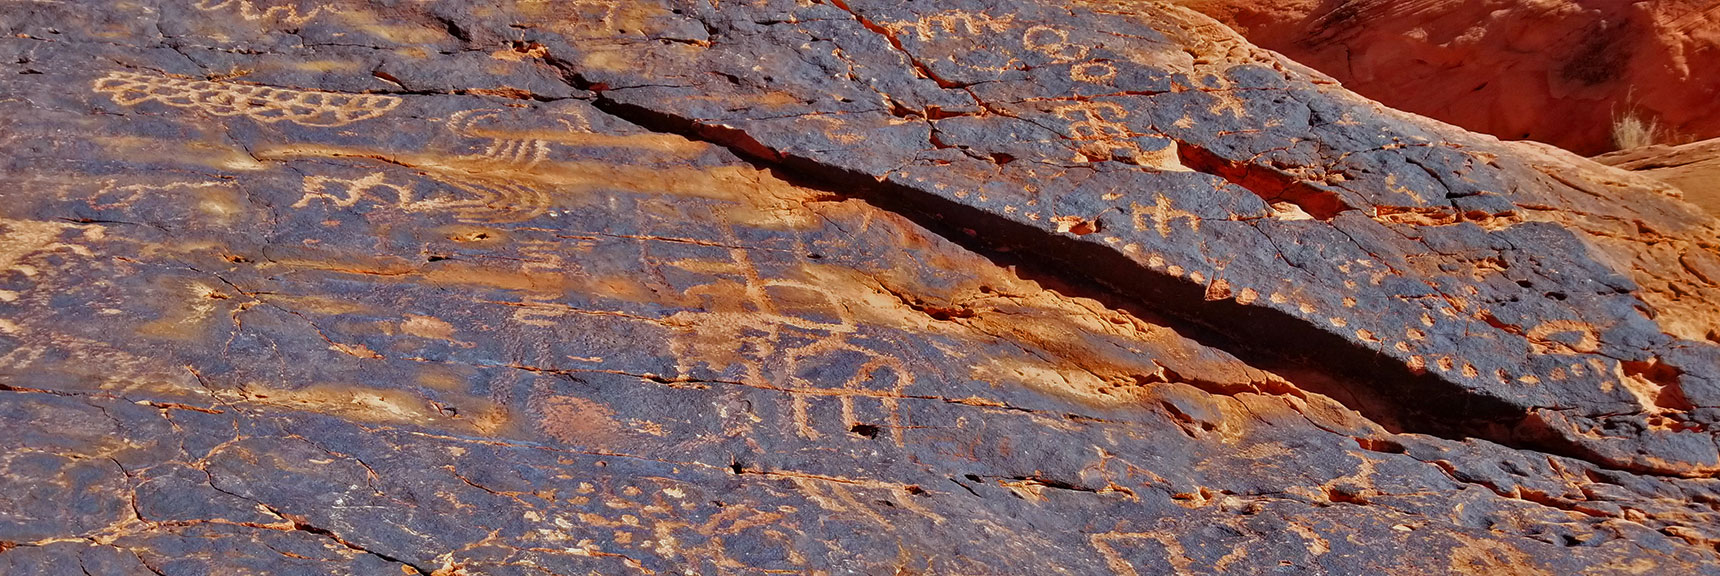 Petroglyphs on Mouse's Tank Trail in Valley of Fire State Park, Nevada, Slide 6